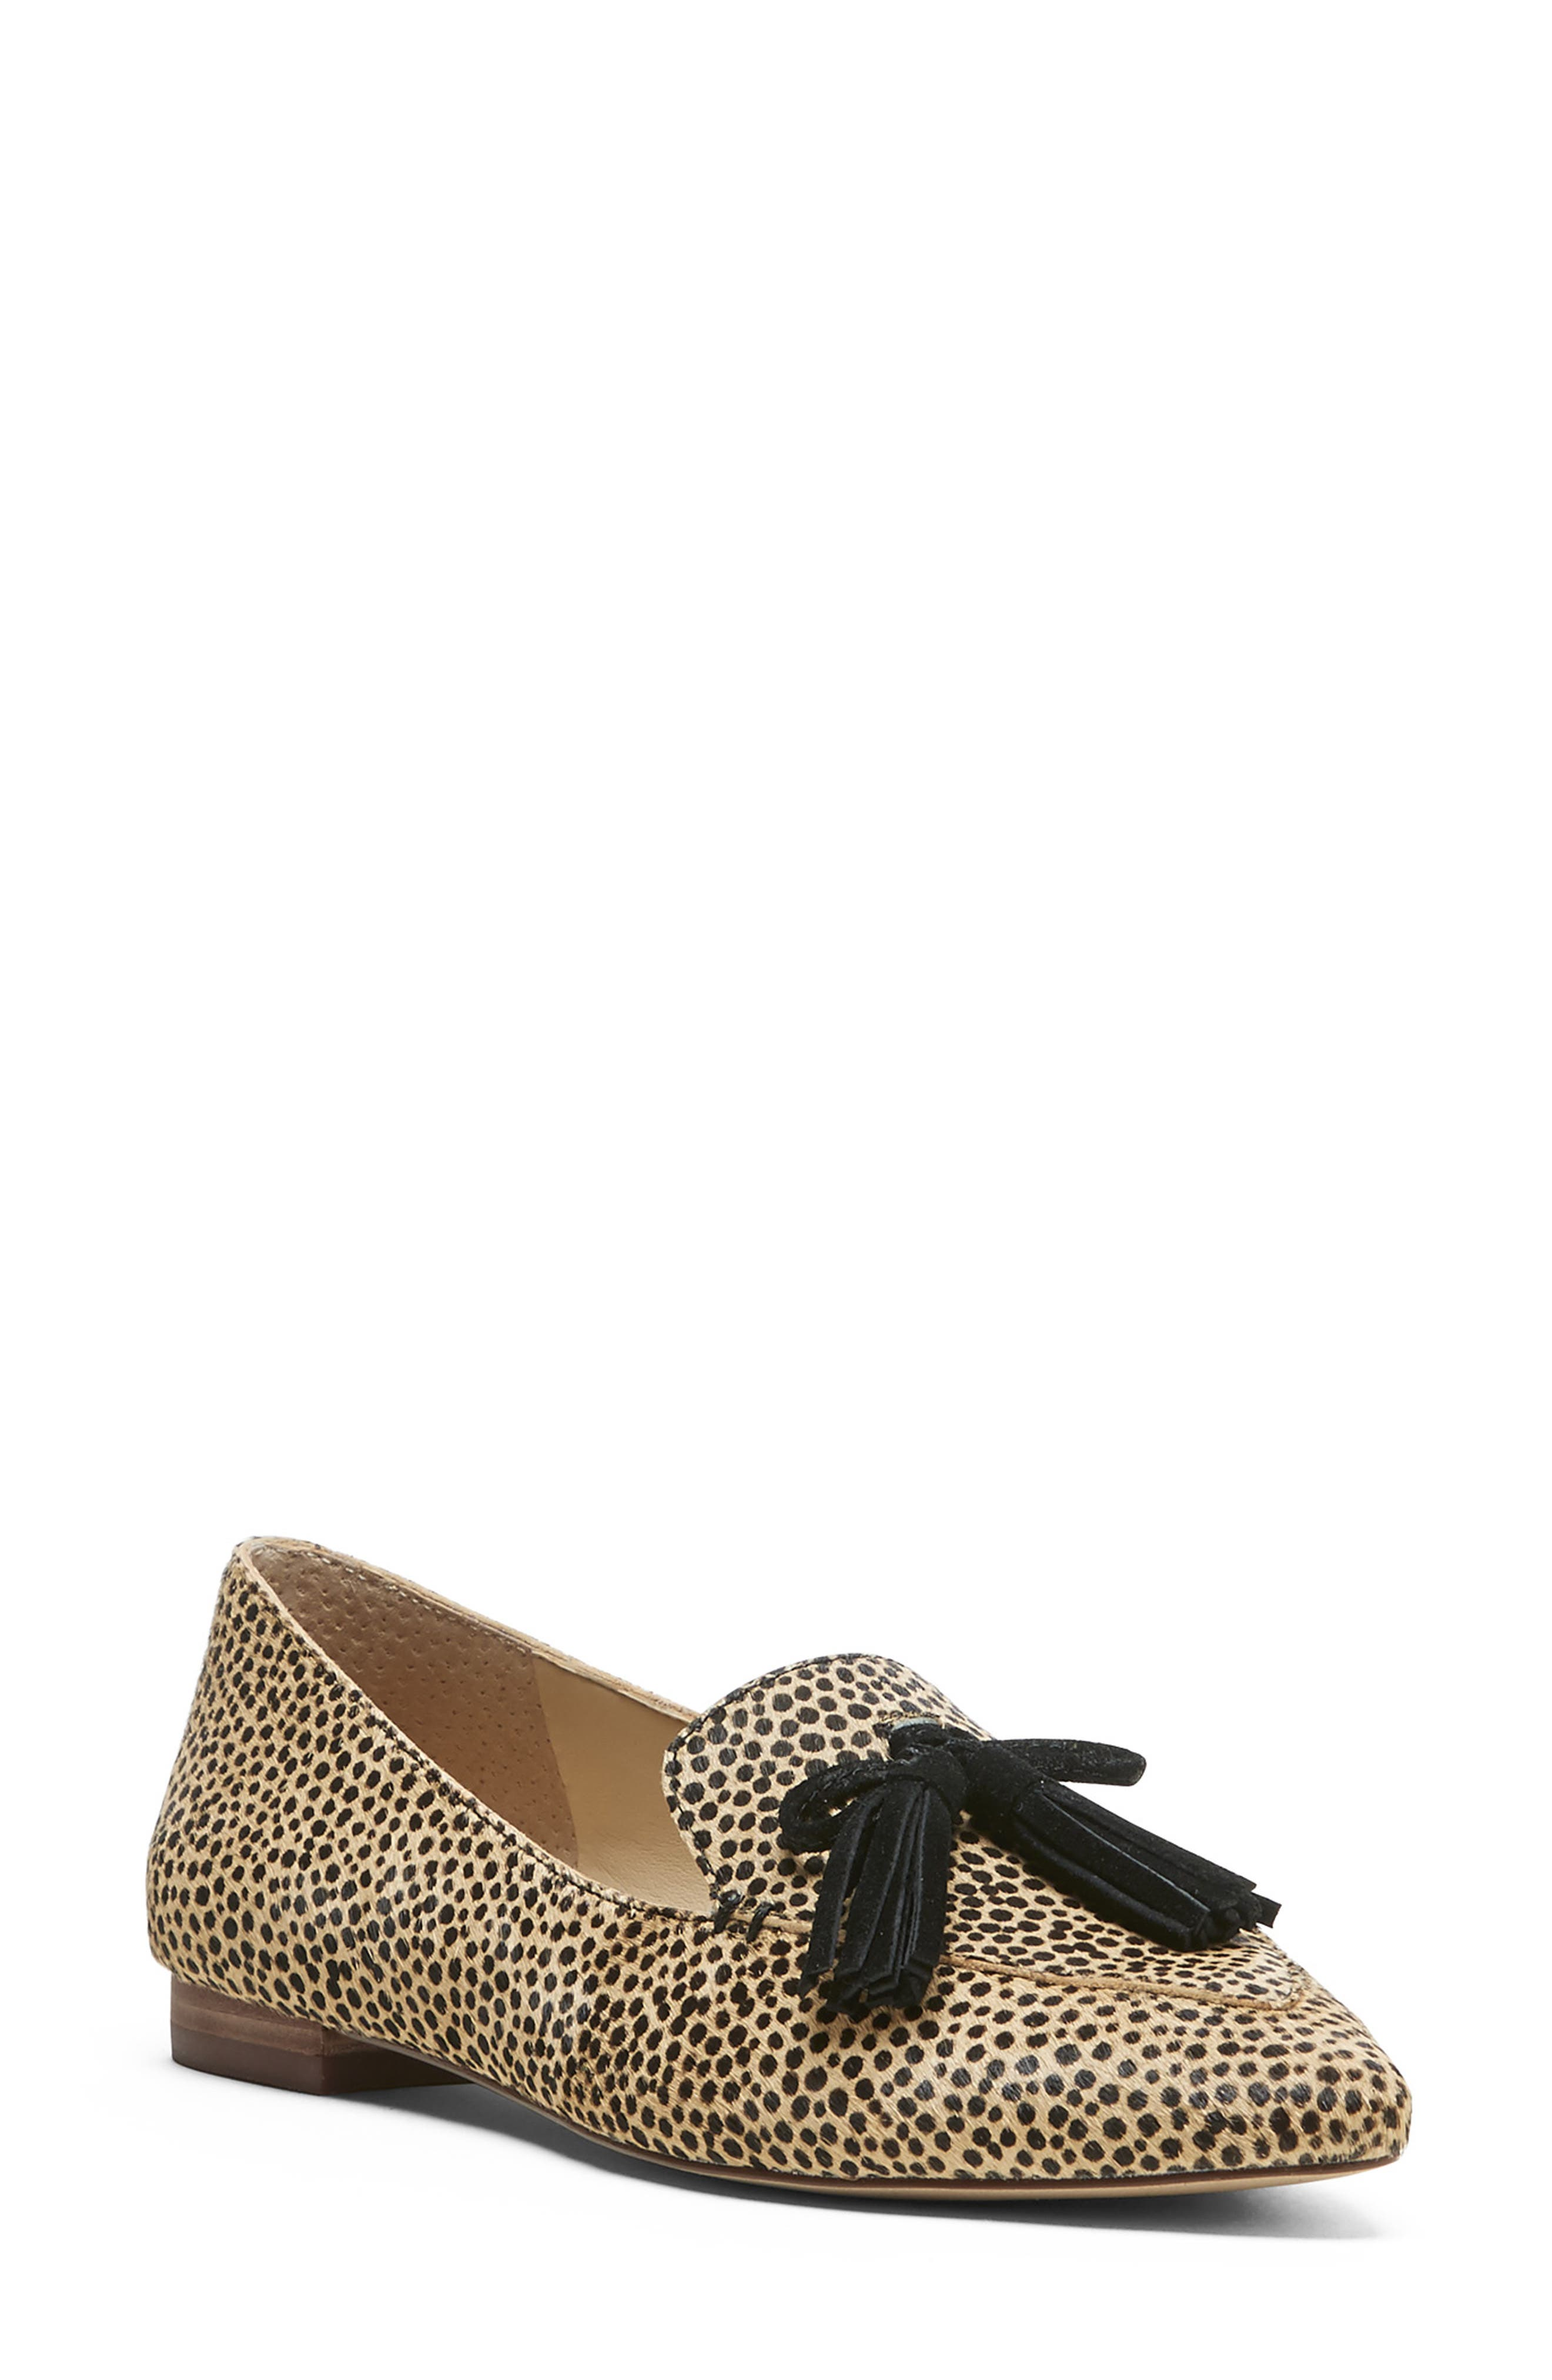 SOLE SOCIETY Hadlee Loafer, Main, color, DOTTED CALF HAIR